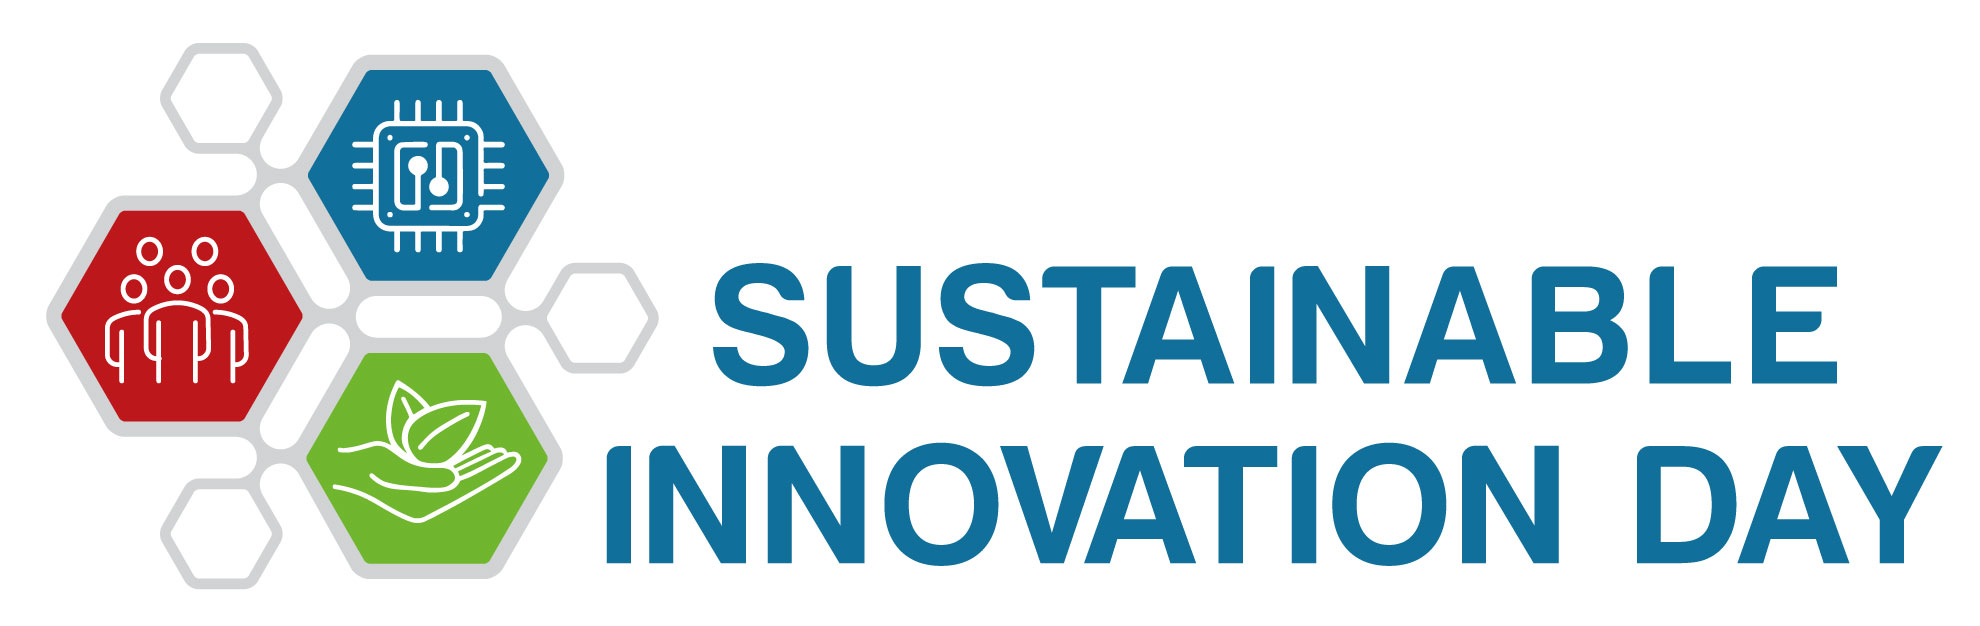 Sustainable Innovation Day